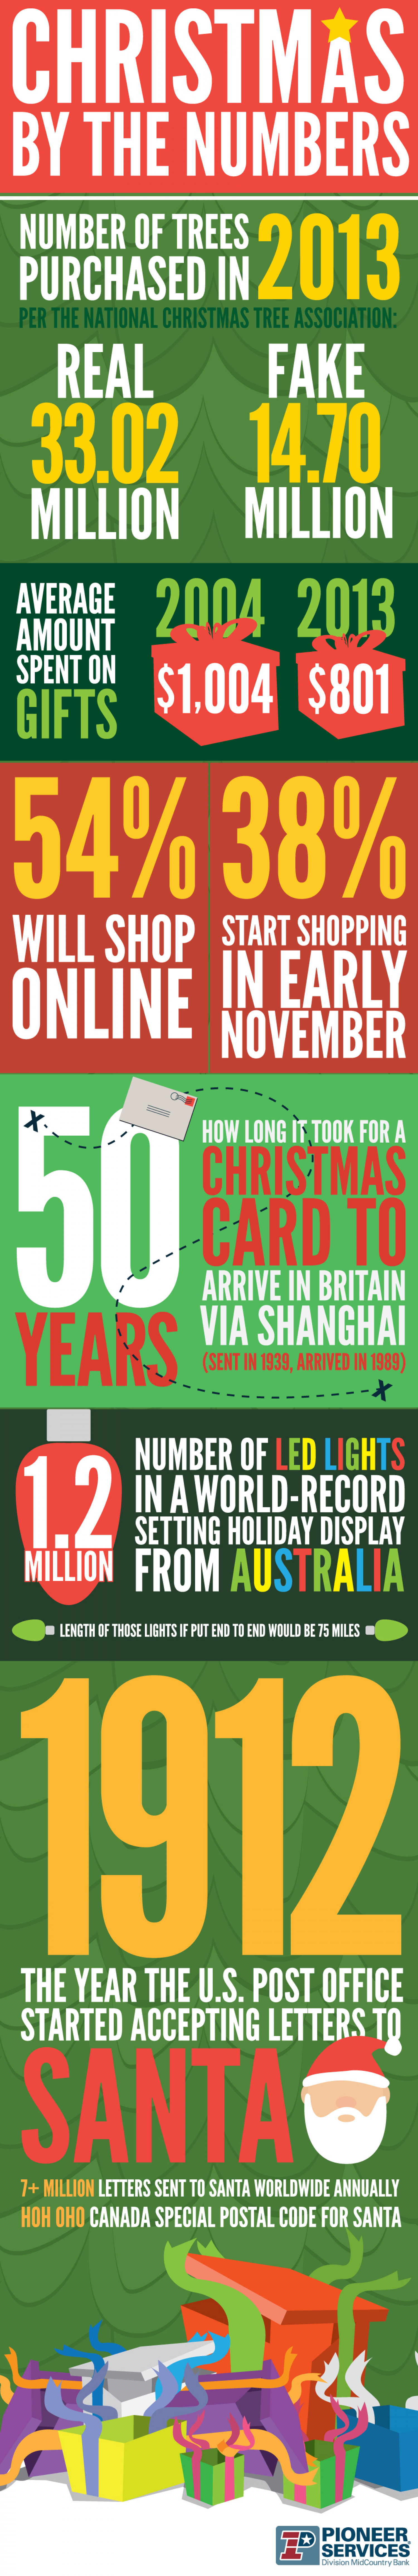 Christmas by the Numbers Infographic